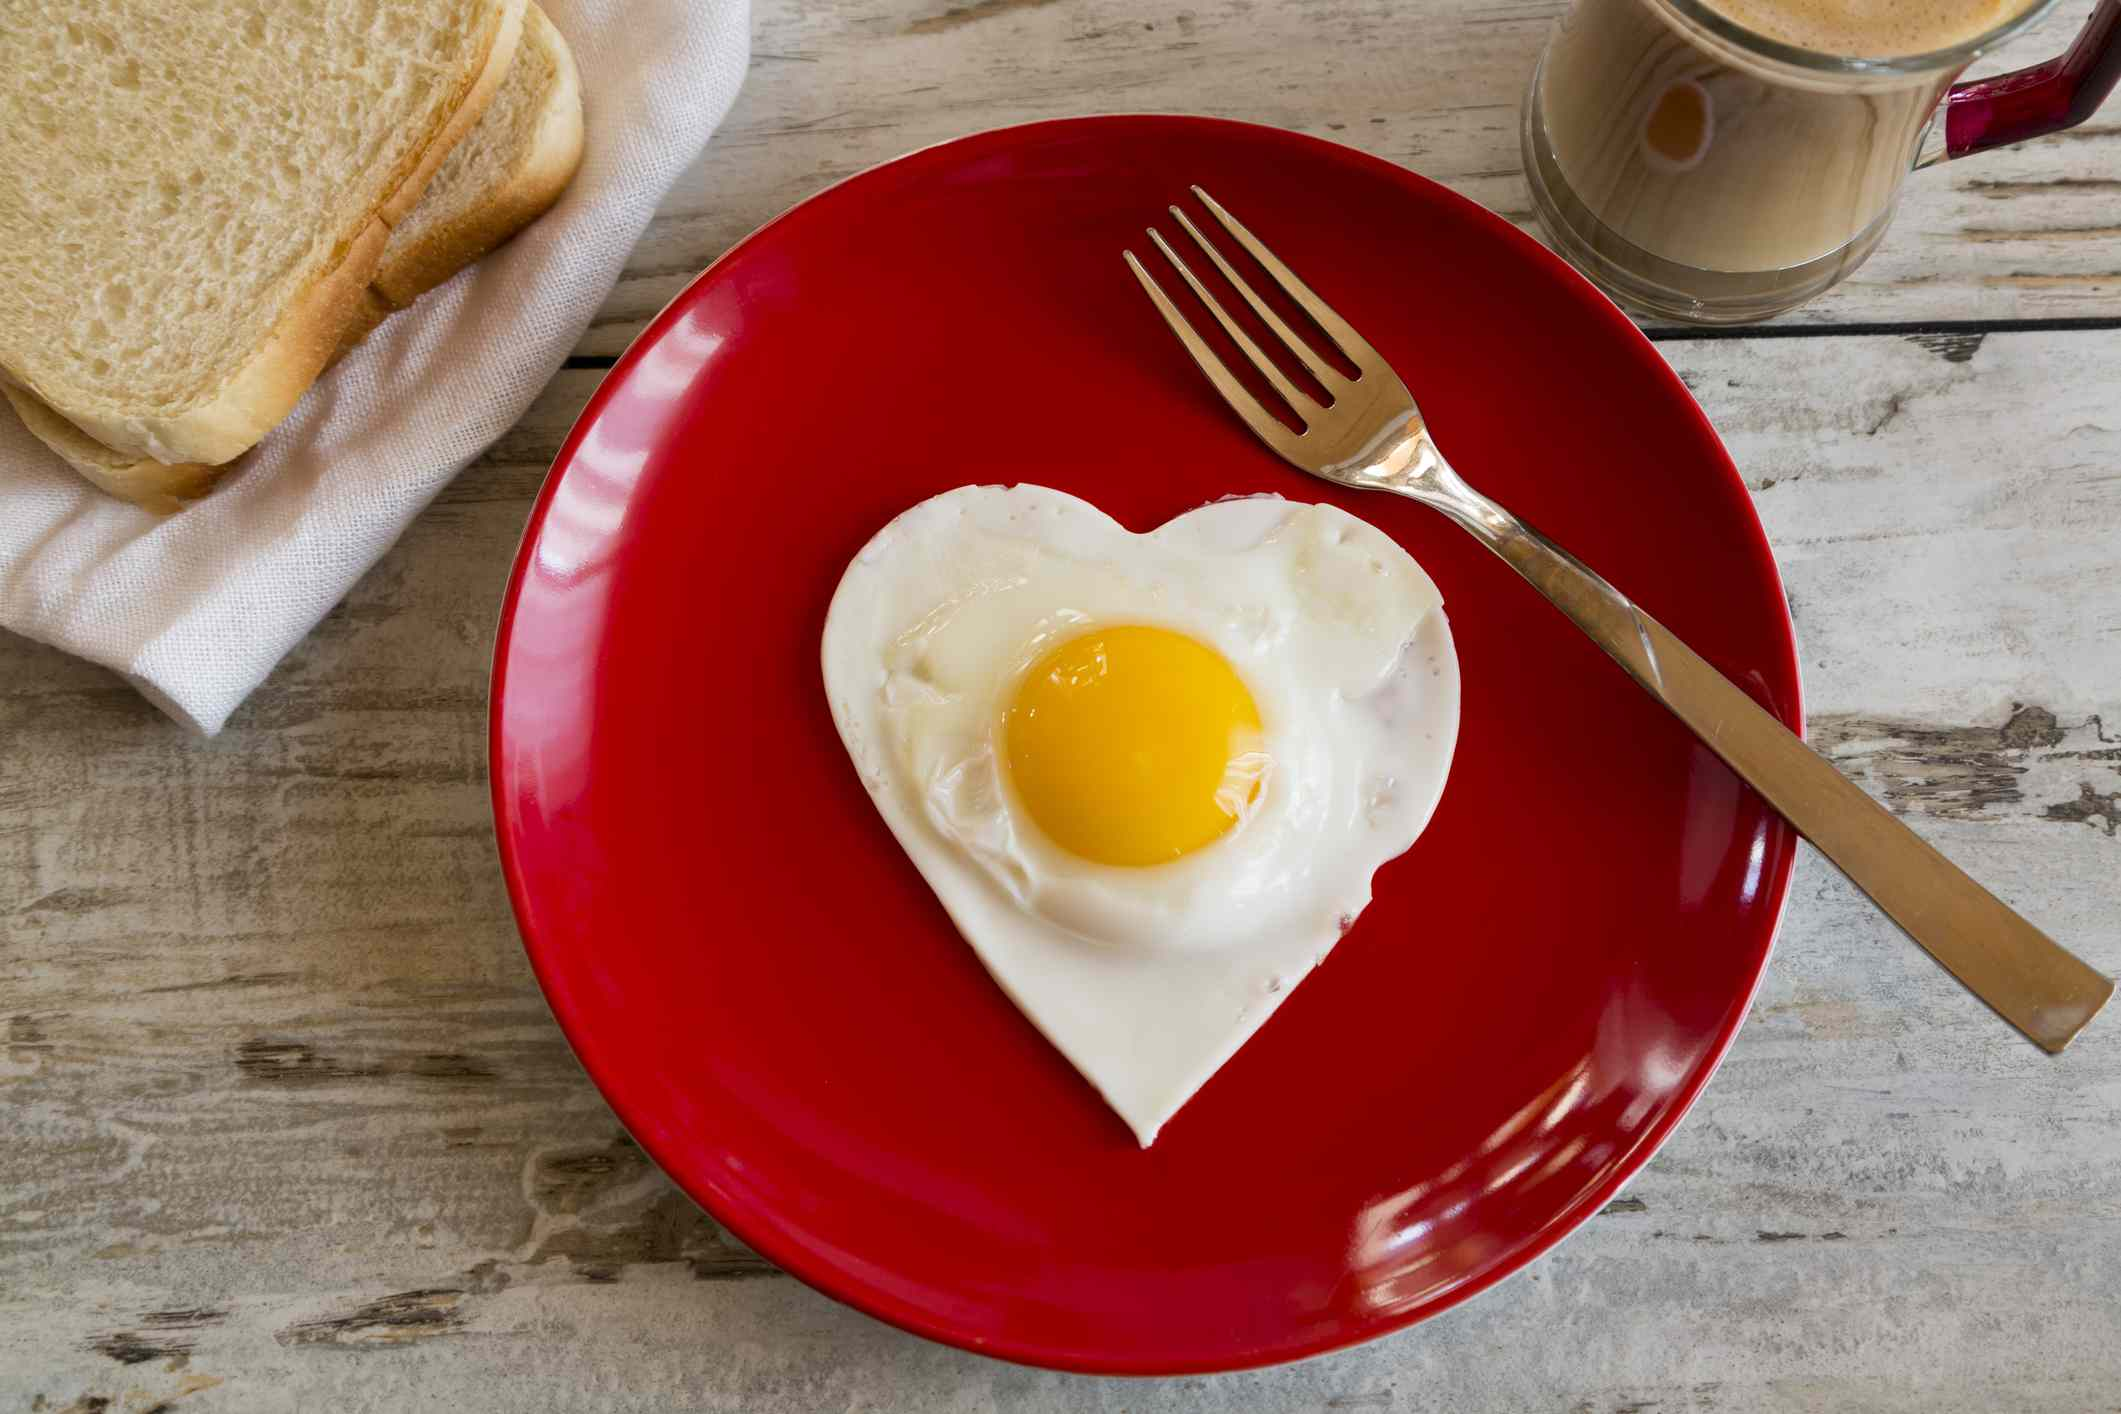 Heart-shaped fried egg on a red plate